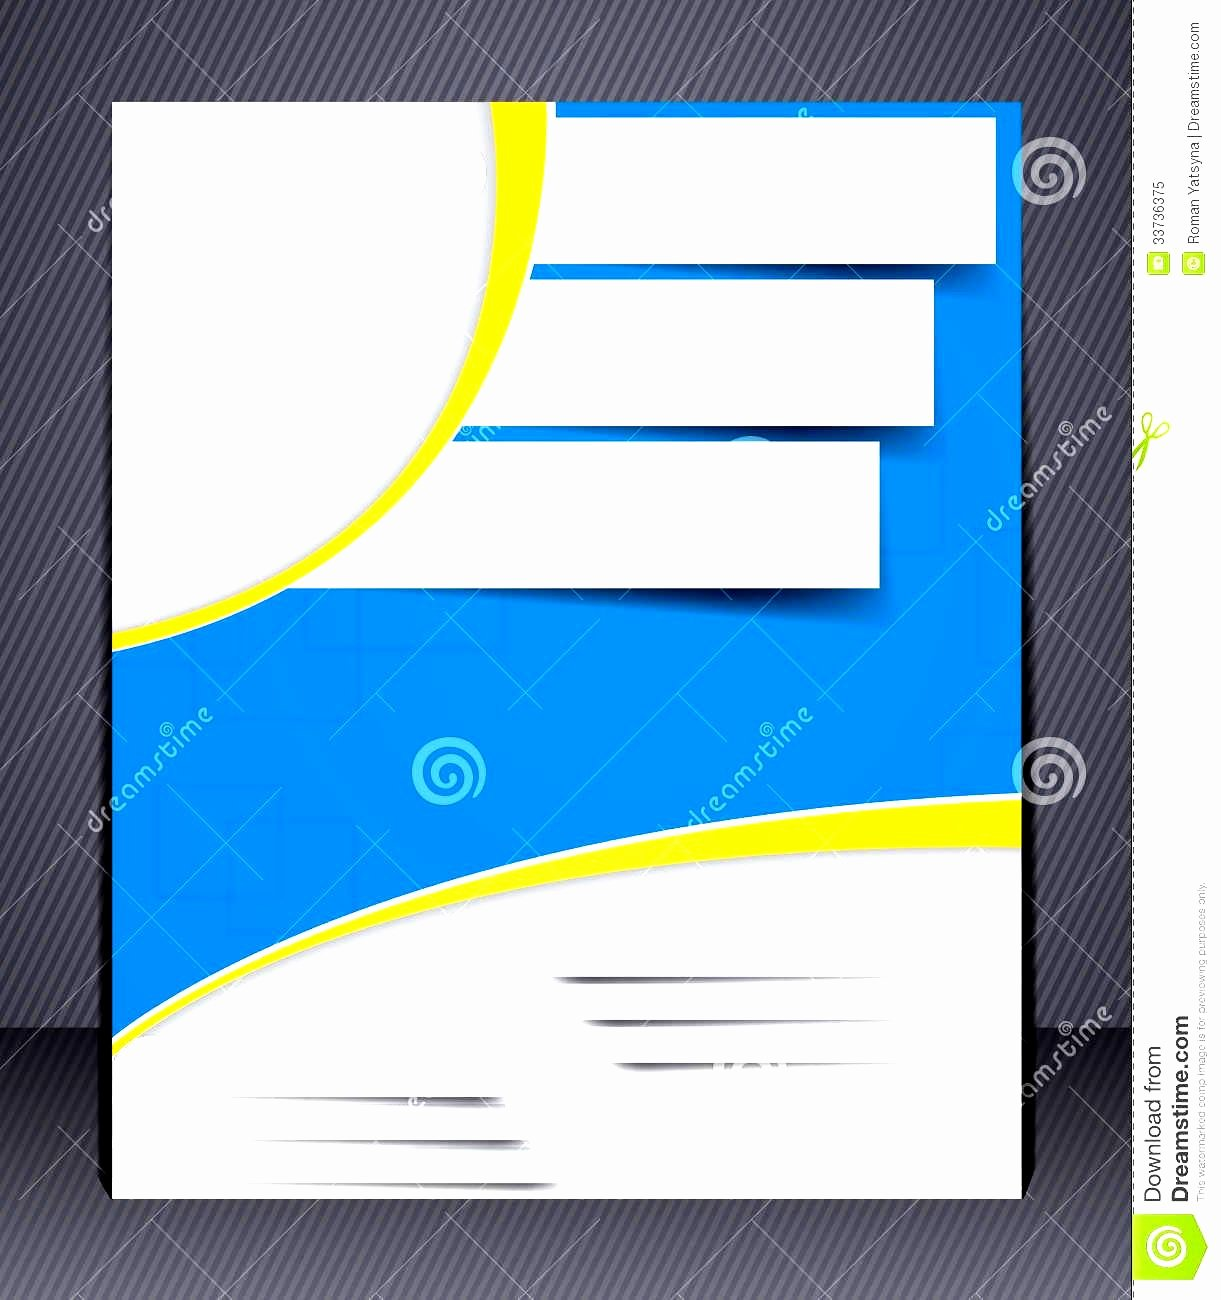 Free Flyer Template Download Yourweek 394a20eca25e